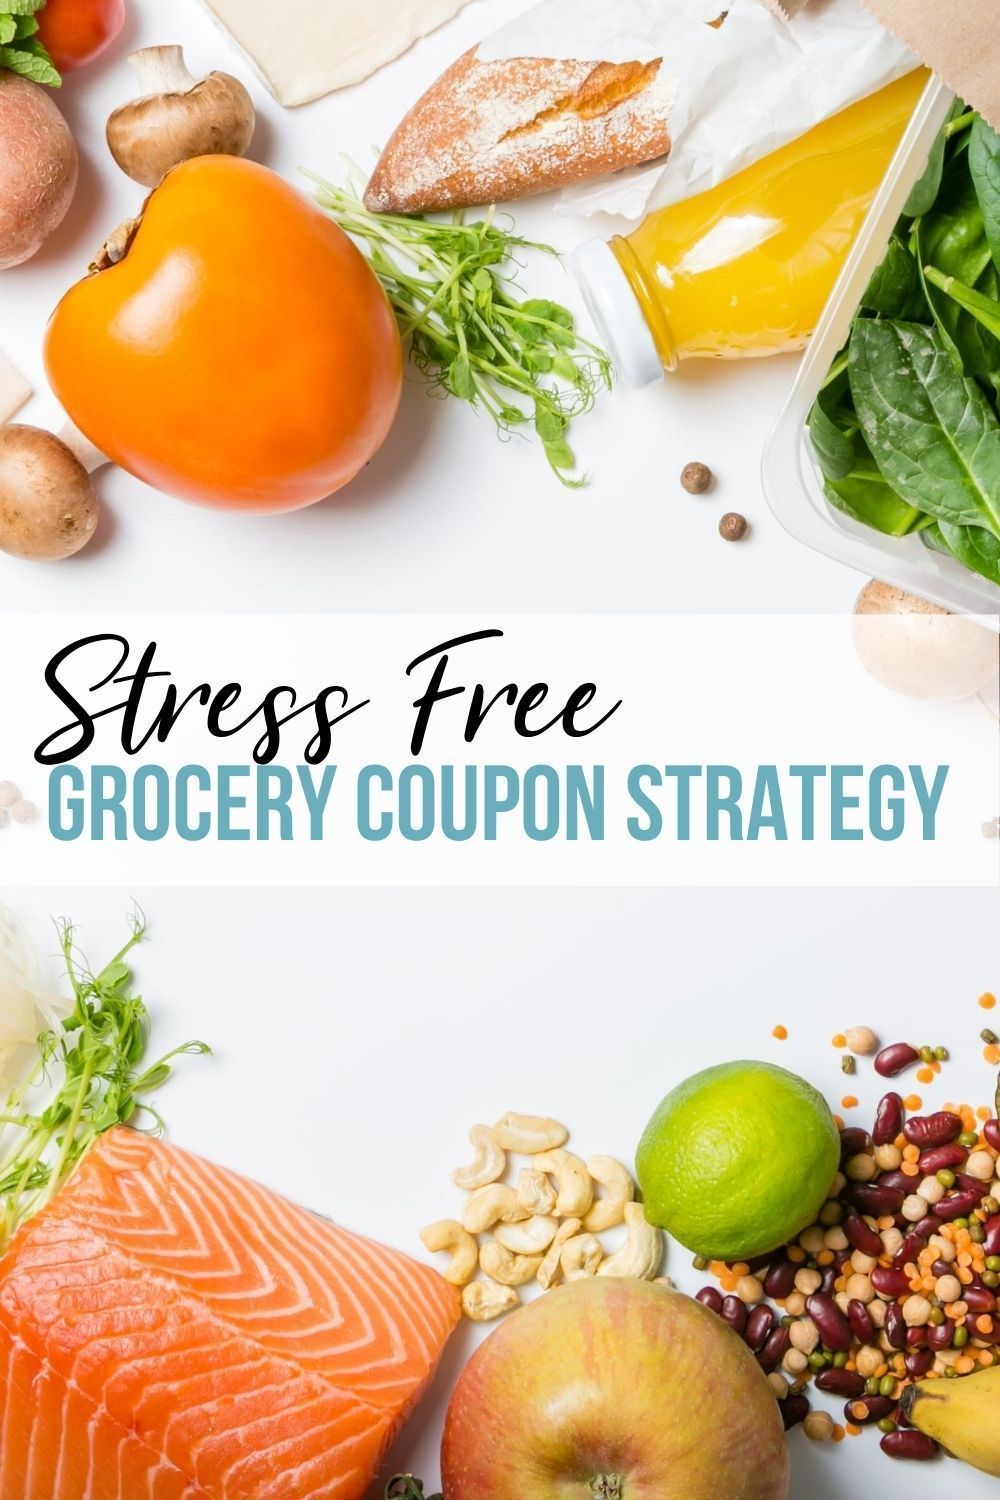 Stress Free Grocery Coupon Strategy In 2020 Grocery Coupons Free Free Groceries Grocery Coupons